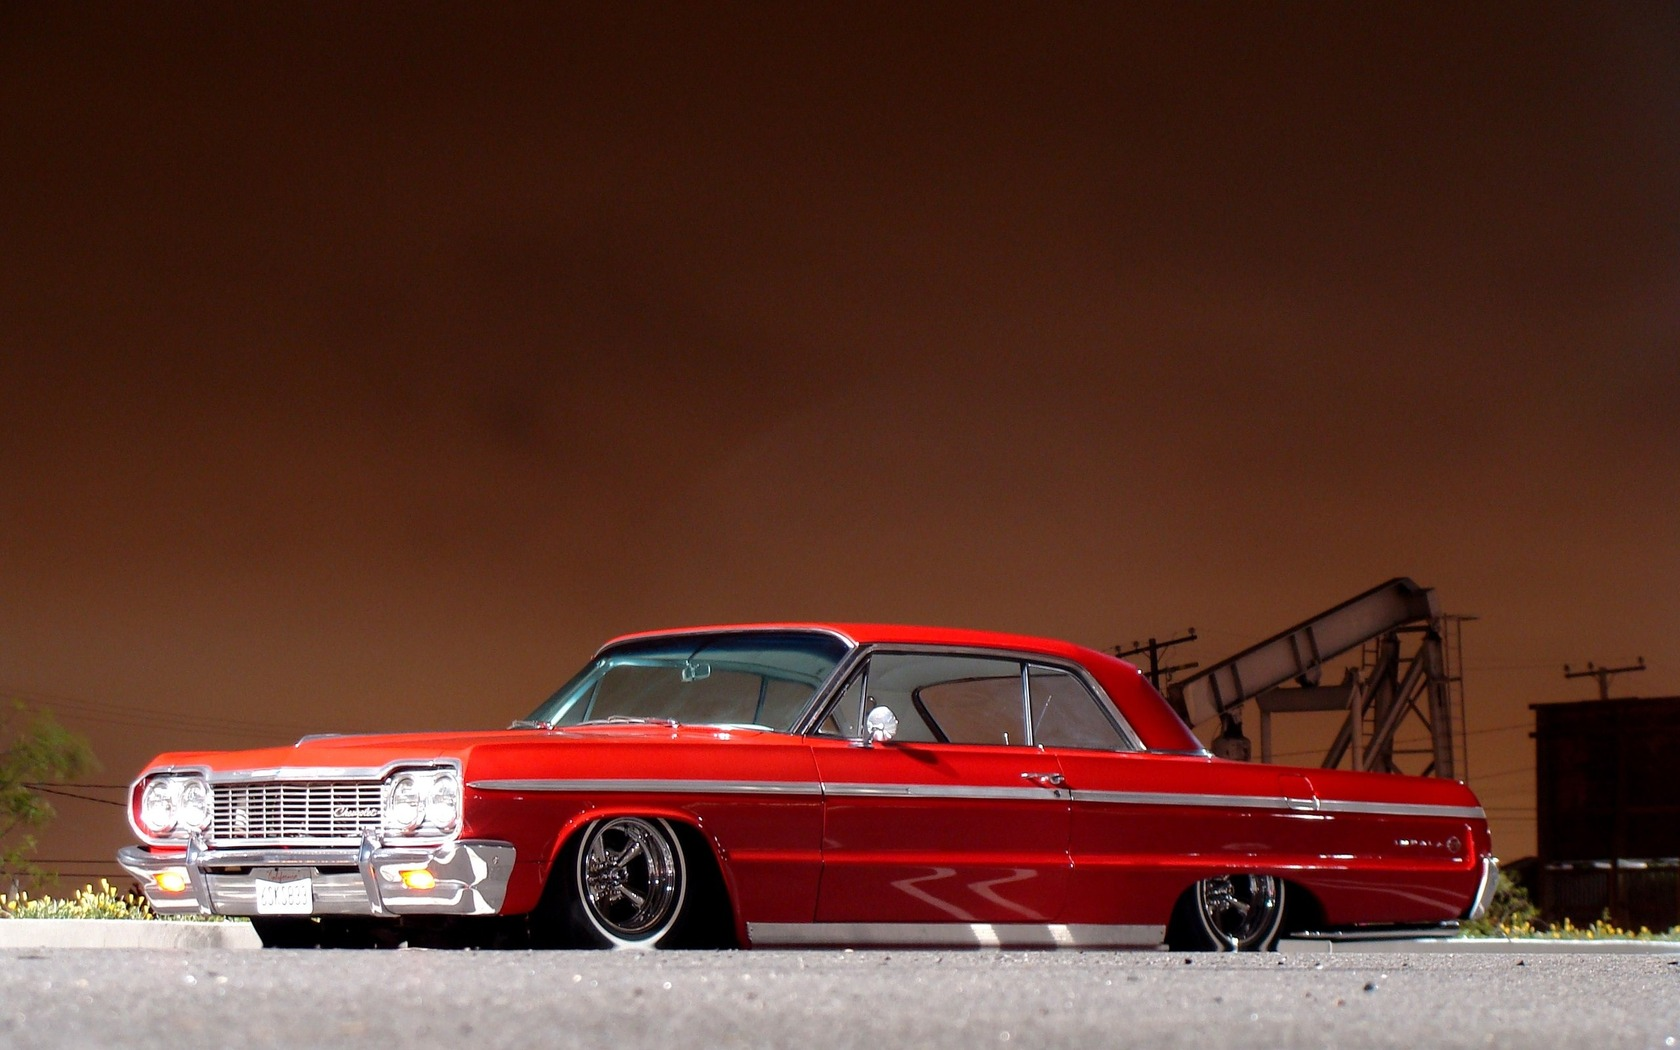 Lowrider Wallpaper and Background Image | 1680x1050 | ID ...